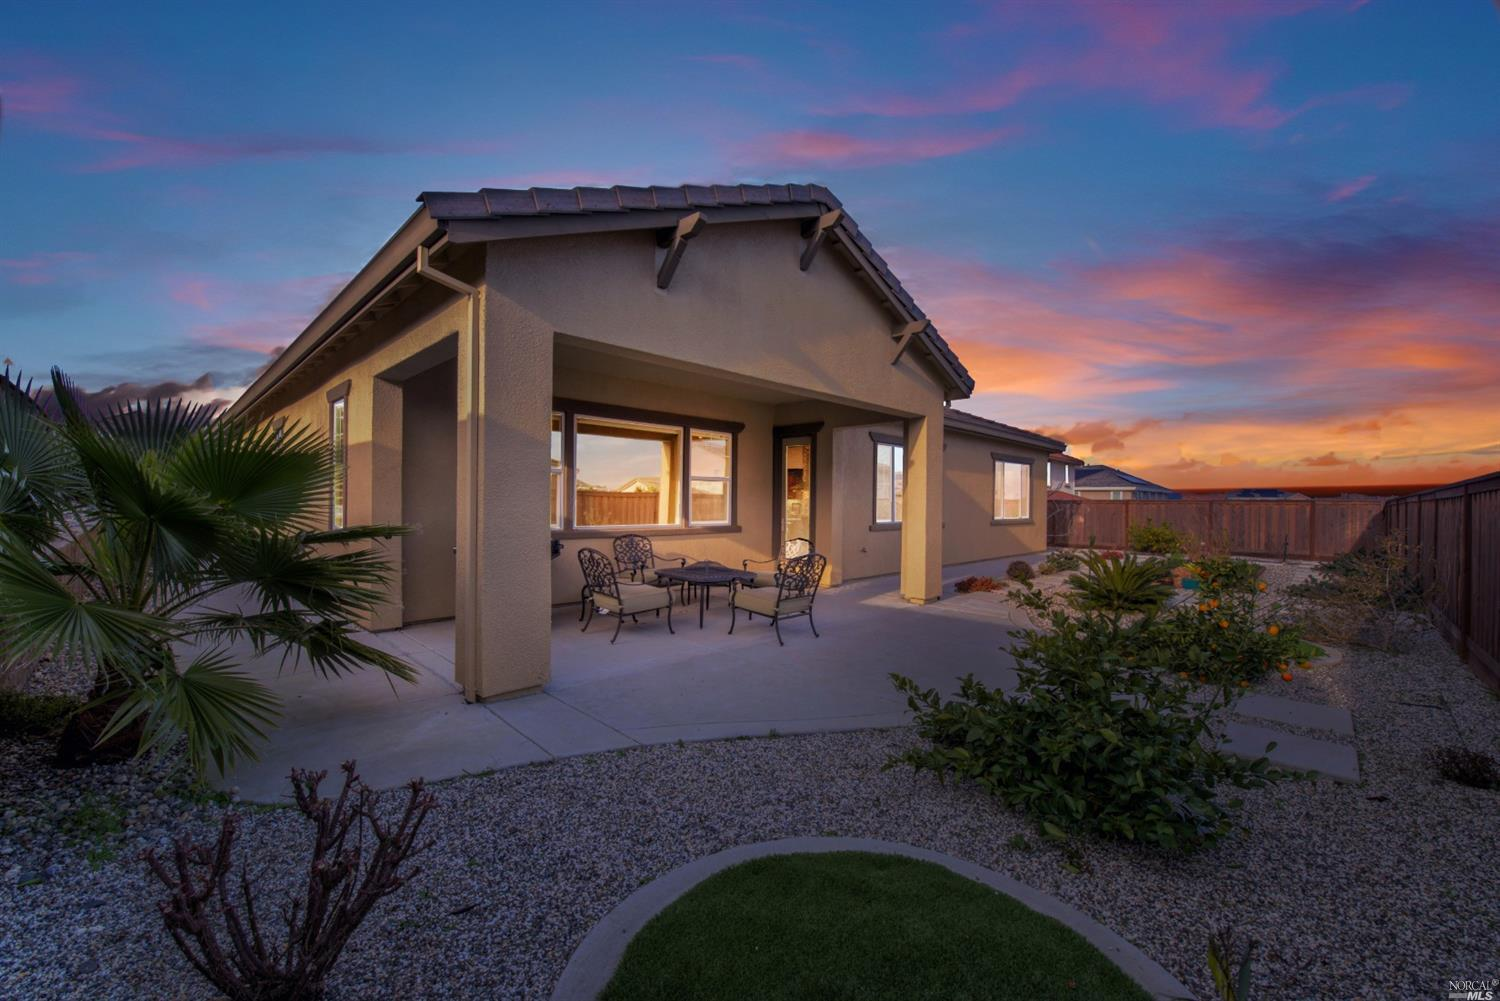 Incredible Opportunity to Own This Stunning Single Story Home In The Highly Desirable Cheyenne At Browns Valley Community! This 4 Bedroom, 2 1/2 Bathroom 3 Car Tandem Garage Home Showcases True Pride Of Ownership And Boasts Many Upgrades Throughout Including Oversized Island With Farmhouse Style Sink, Granite And Quartz Countertops With Custom Arabesque Tile Backsplash, Extended Cabinets In The Kitchen Nook, High End Built-In Stainless Steel Appliances With Hood, Pendant And LED Lighting And Butler's Pantry. Spacious And Open Concept Great Room With Gas Fireplace, Beautiful Wood-Tile Flooring In Living Spaces, Wood Flooring In The Master Bedroom And Closet And Upgraded Carpet In Remaining Bedrooms. Additional Upgrades Include Custom Window